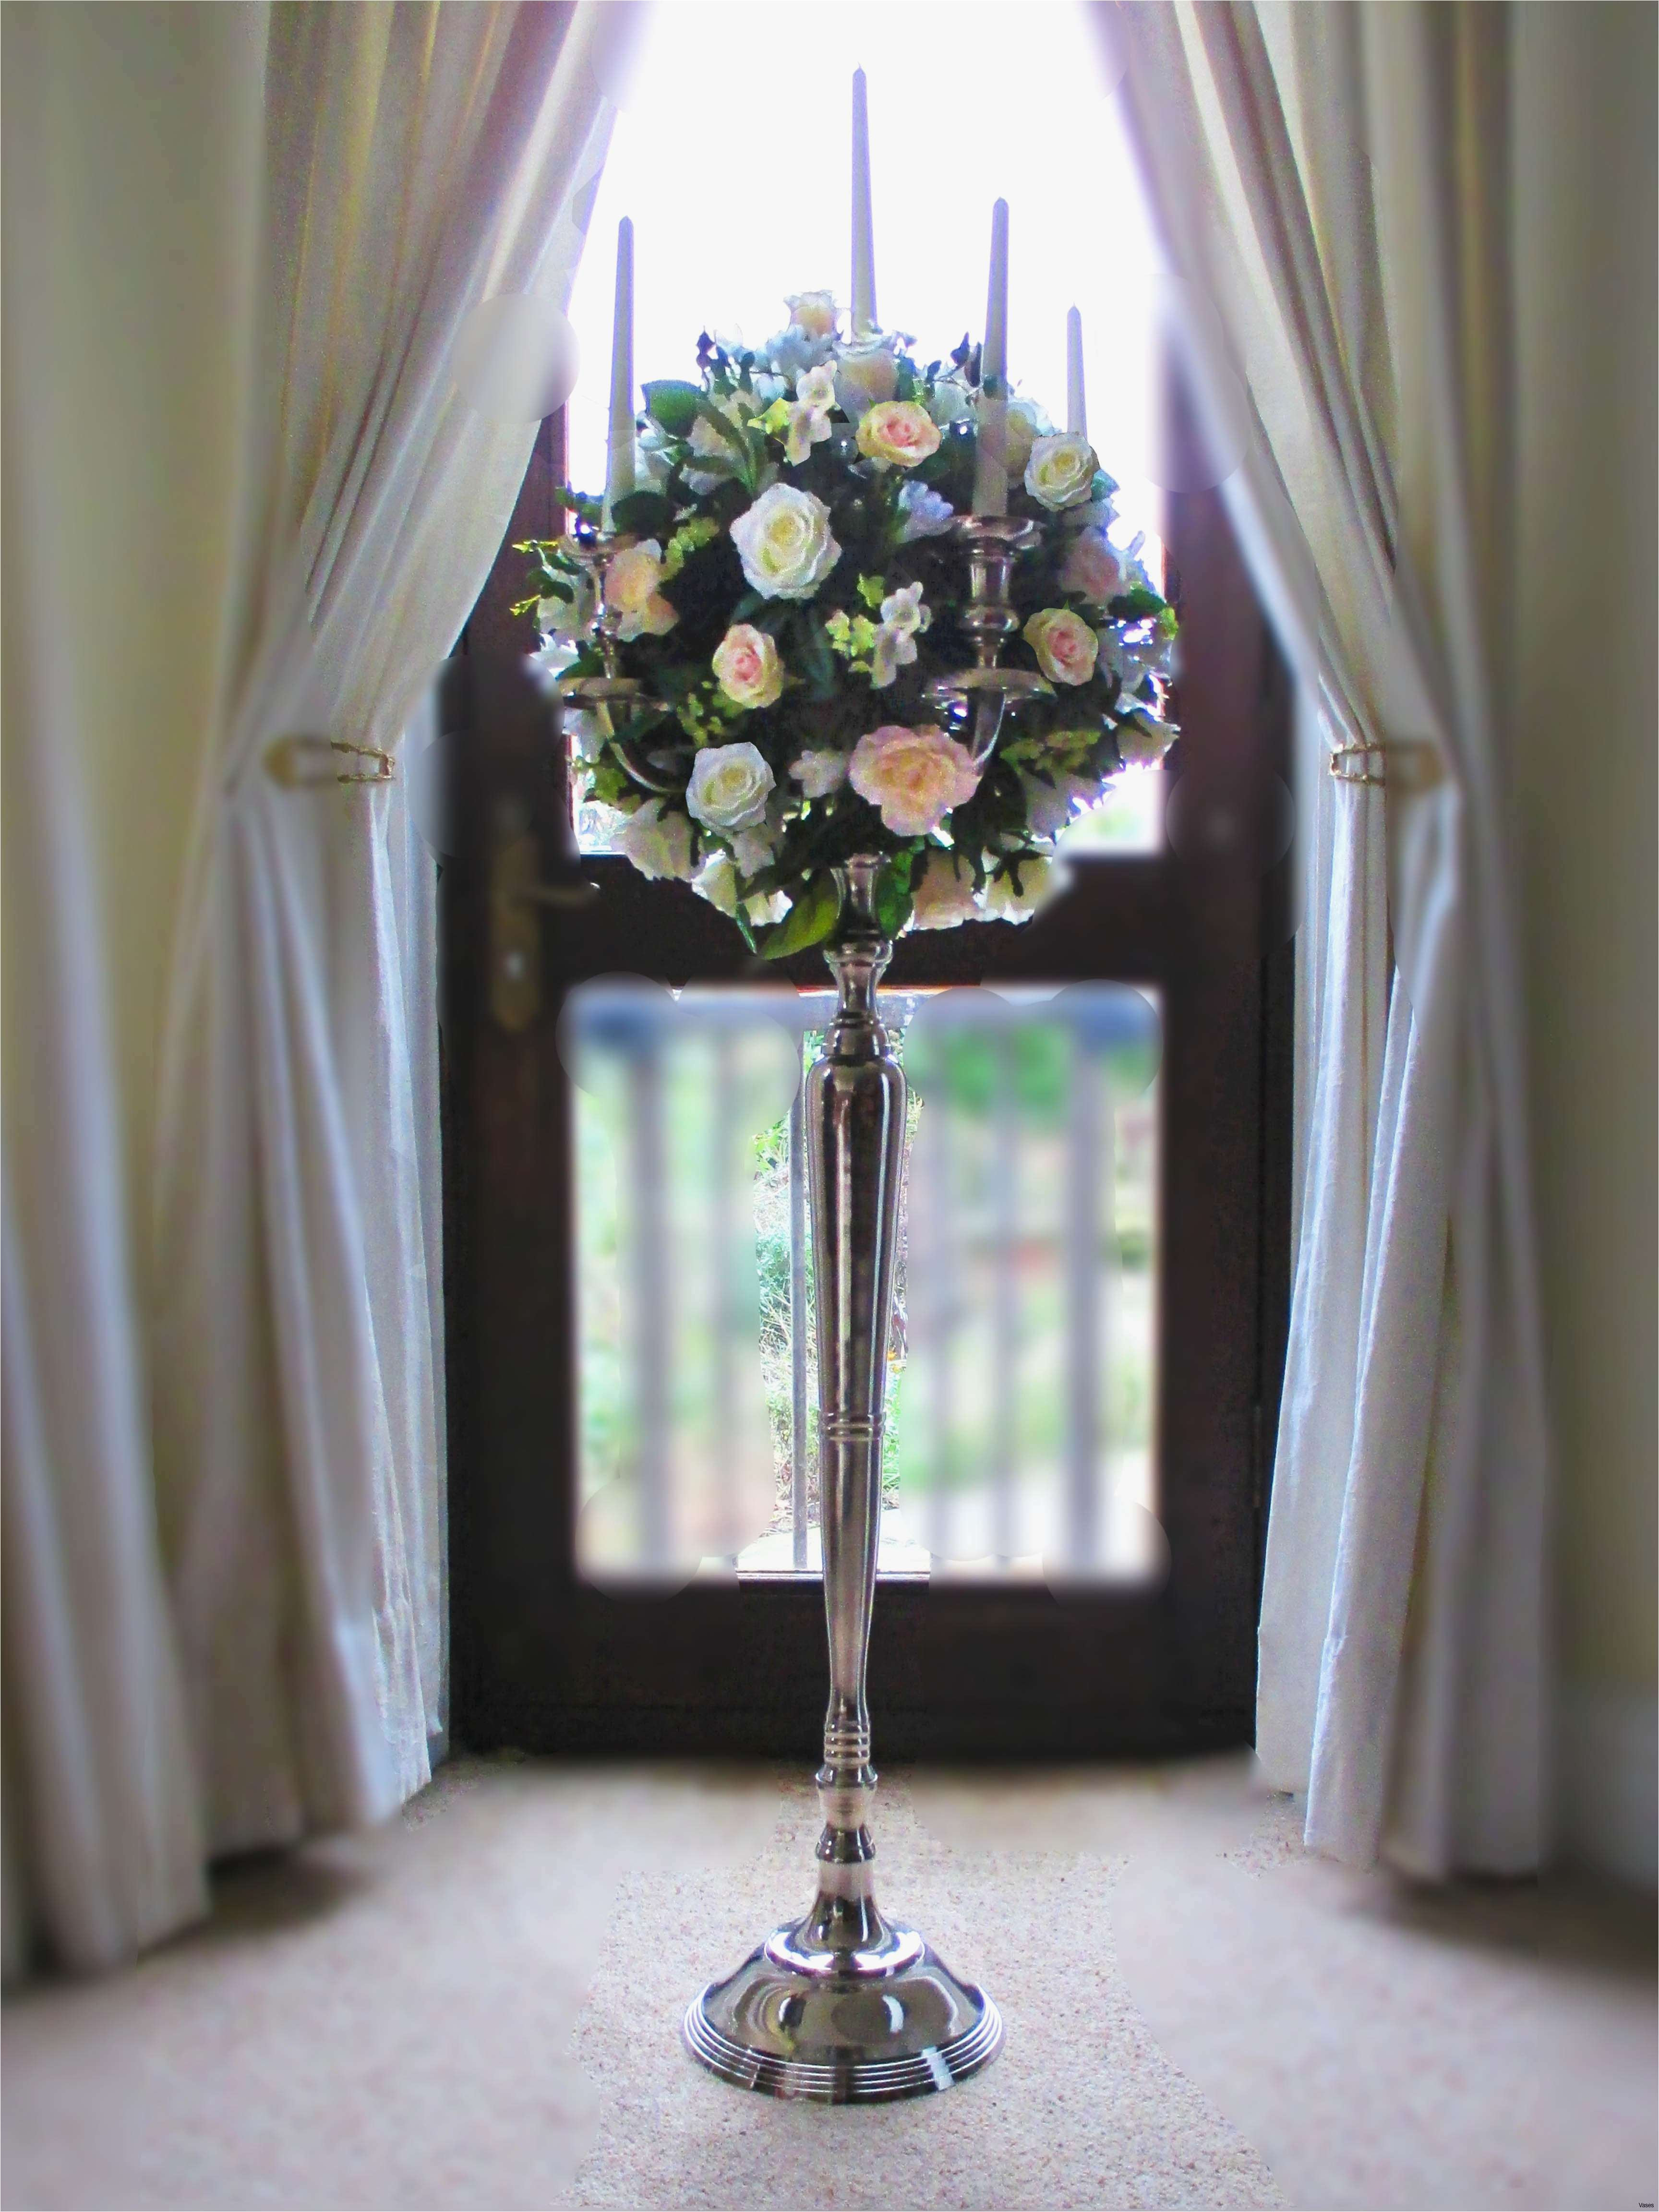 discount vases for centerpieces of autumn wedding free wedding fall wedding centerpieces awesome tall throughout autumn wedding gallery cheap wedding bouquets packages 5397h vases silver vase leeds i 0d new